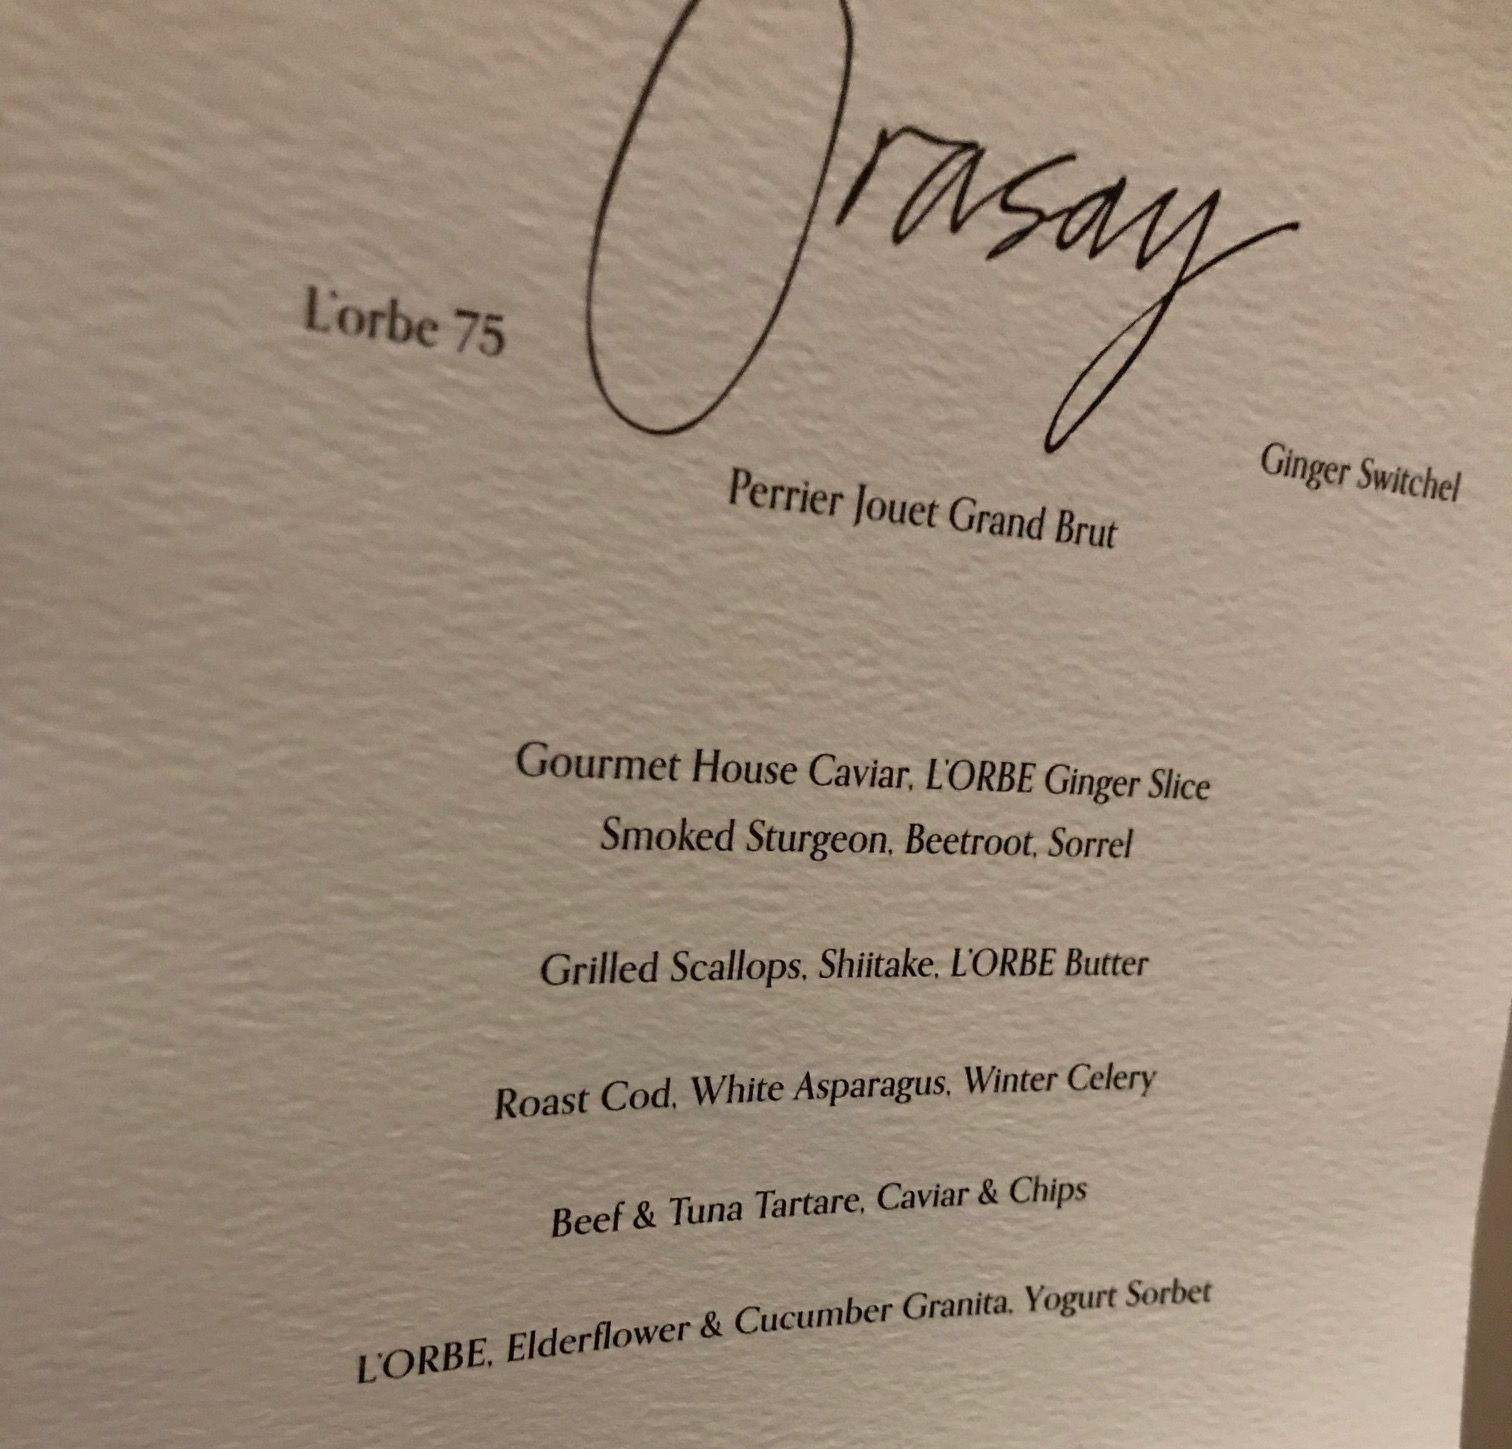 Orasay private dinner menu (SWH/PA)